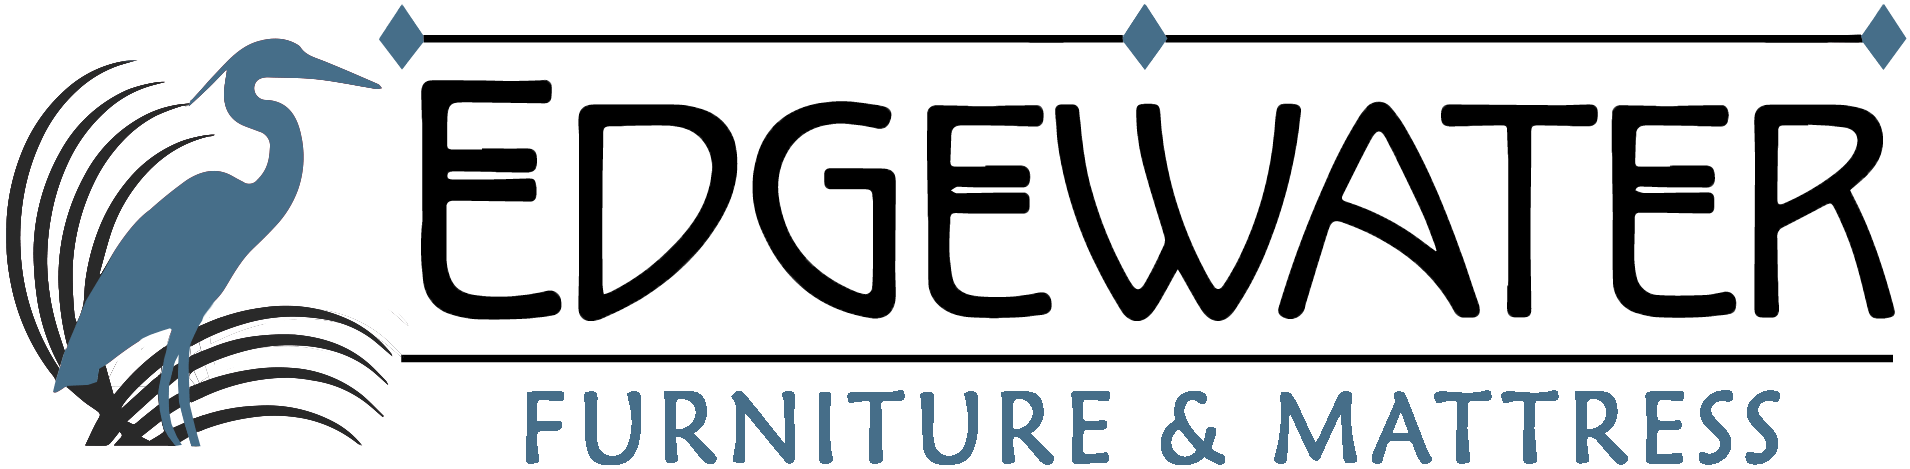 Edgewater Home Furnishings Logo